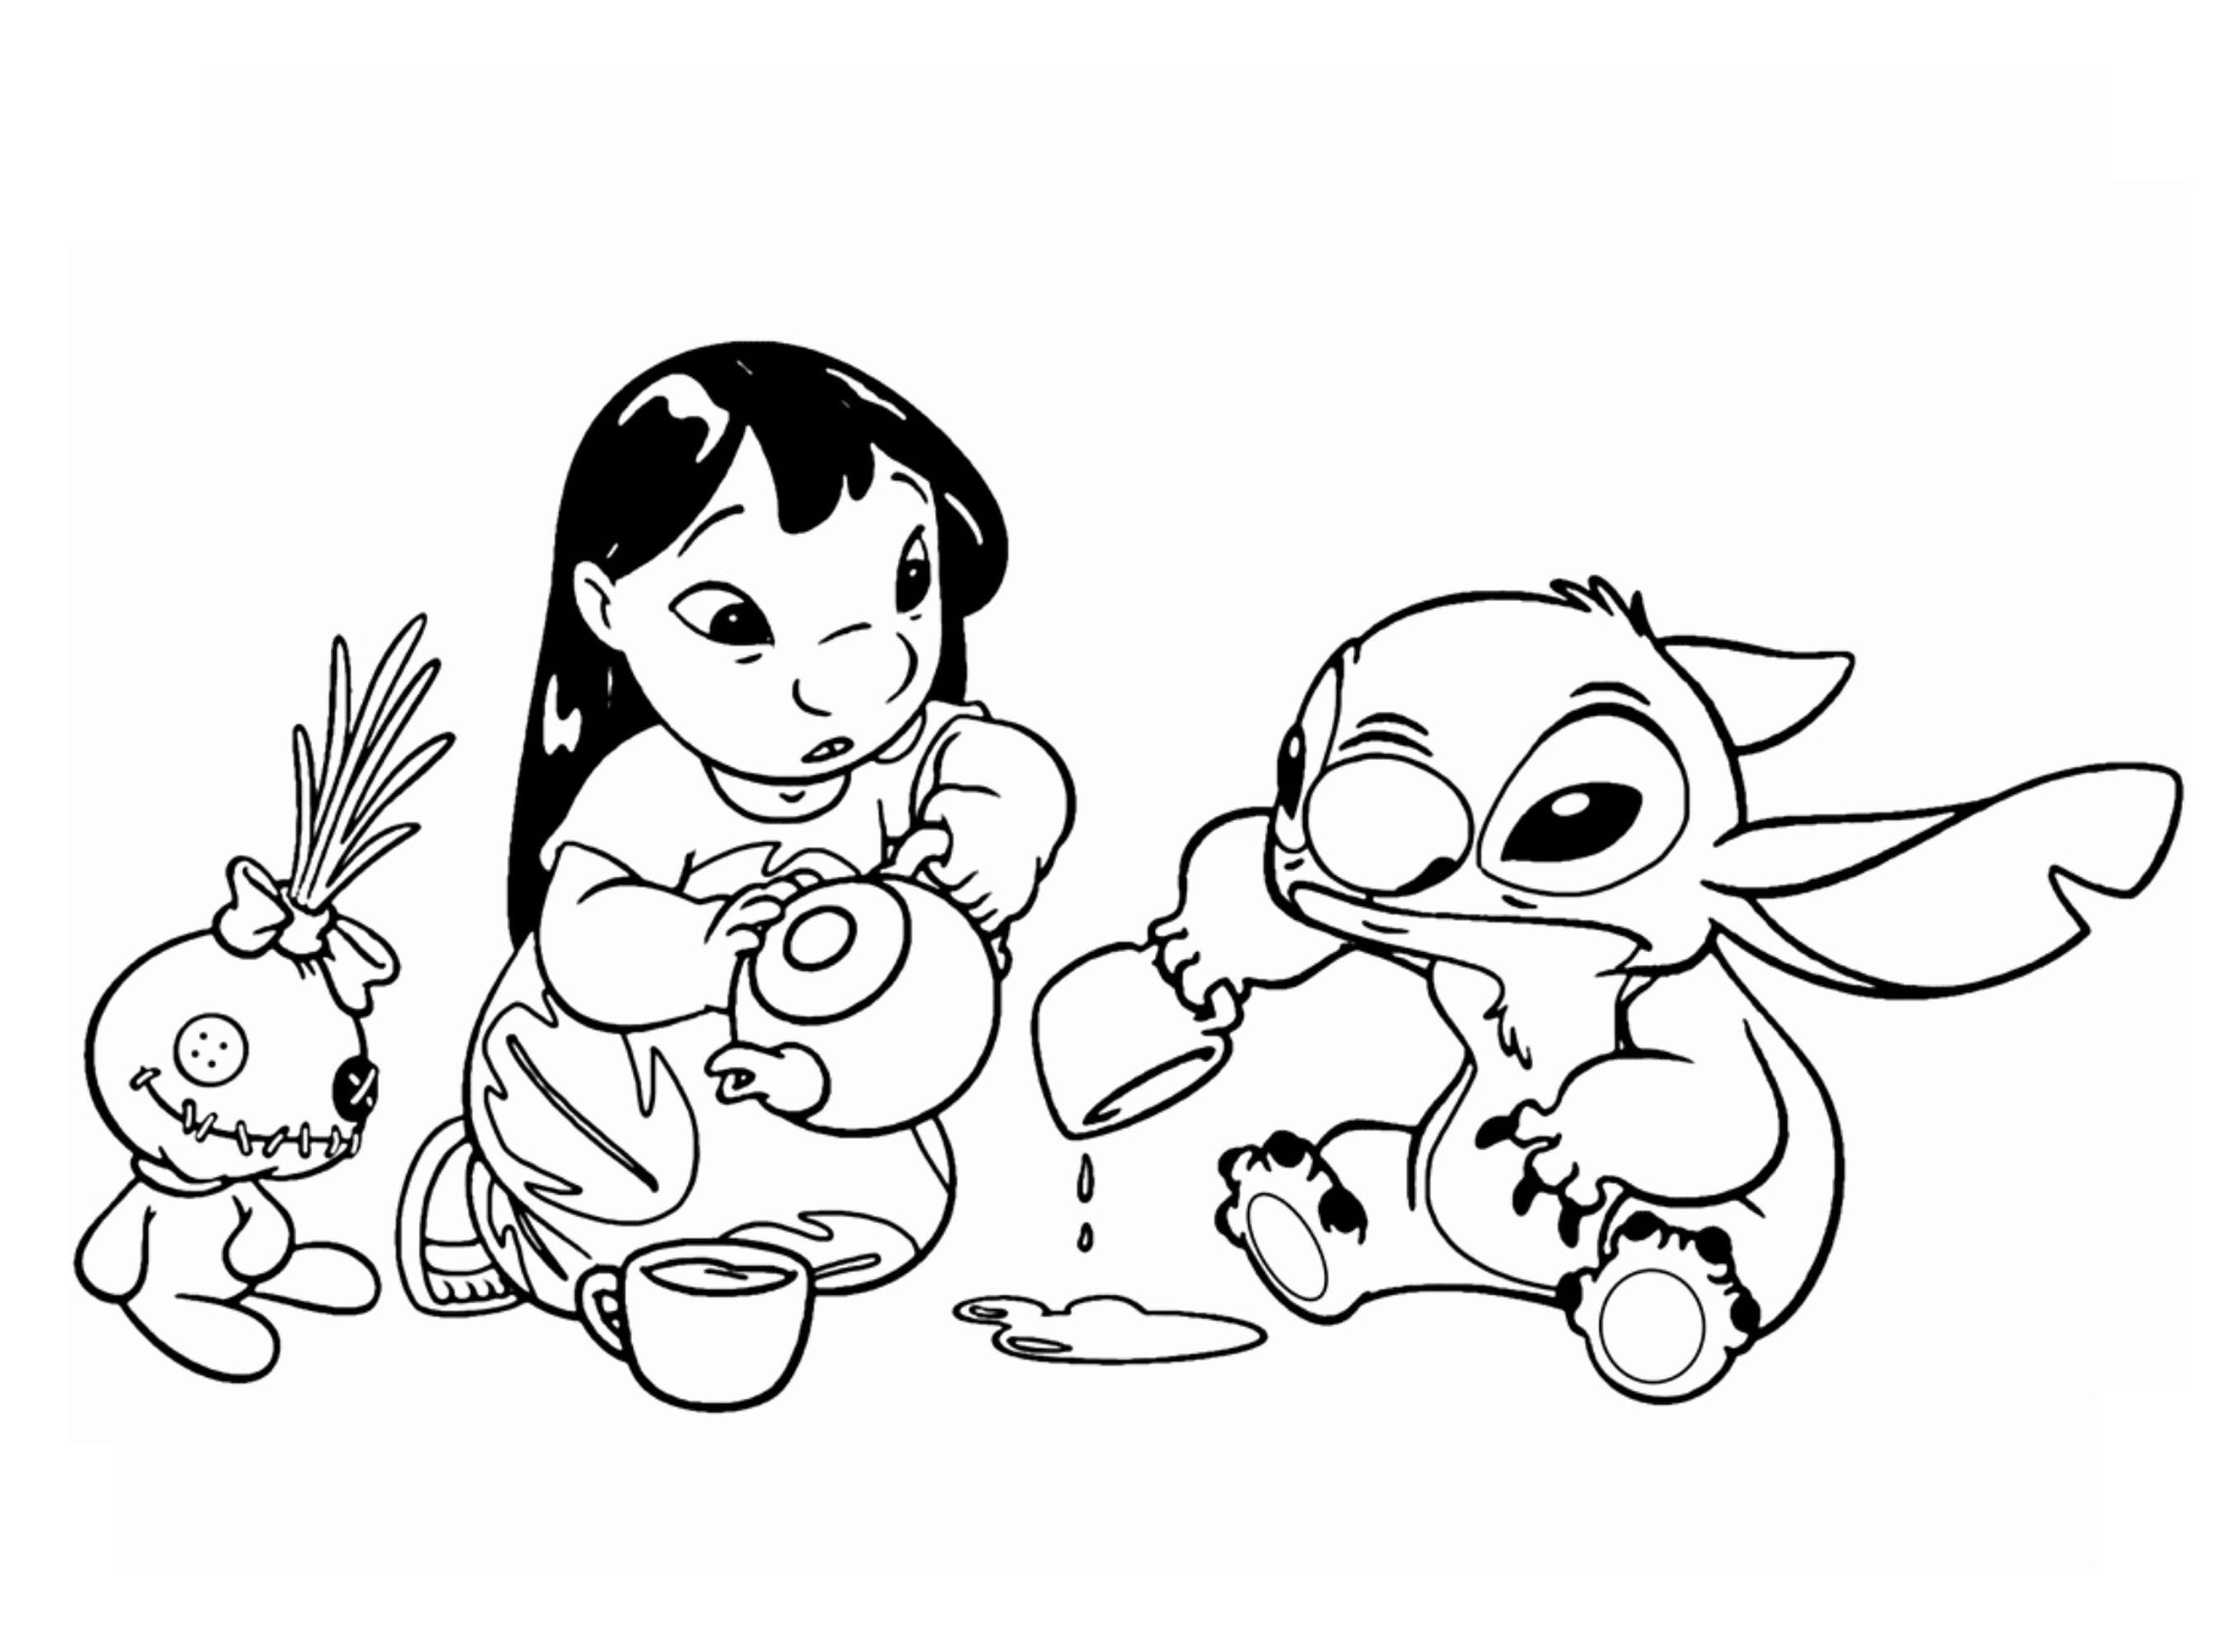 Disney Coloring Pages To Print: Lilo & Stitch Coloring Pages | 2000x2689